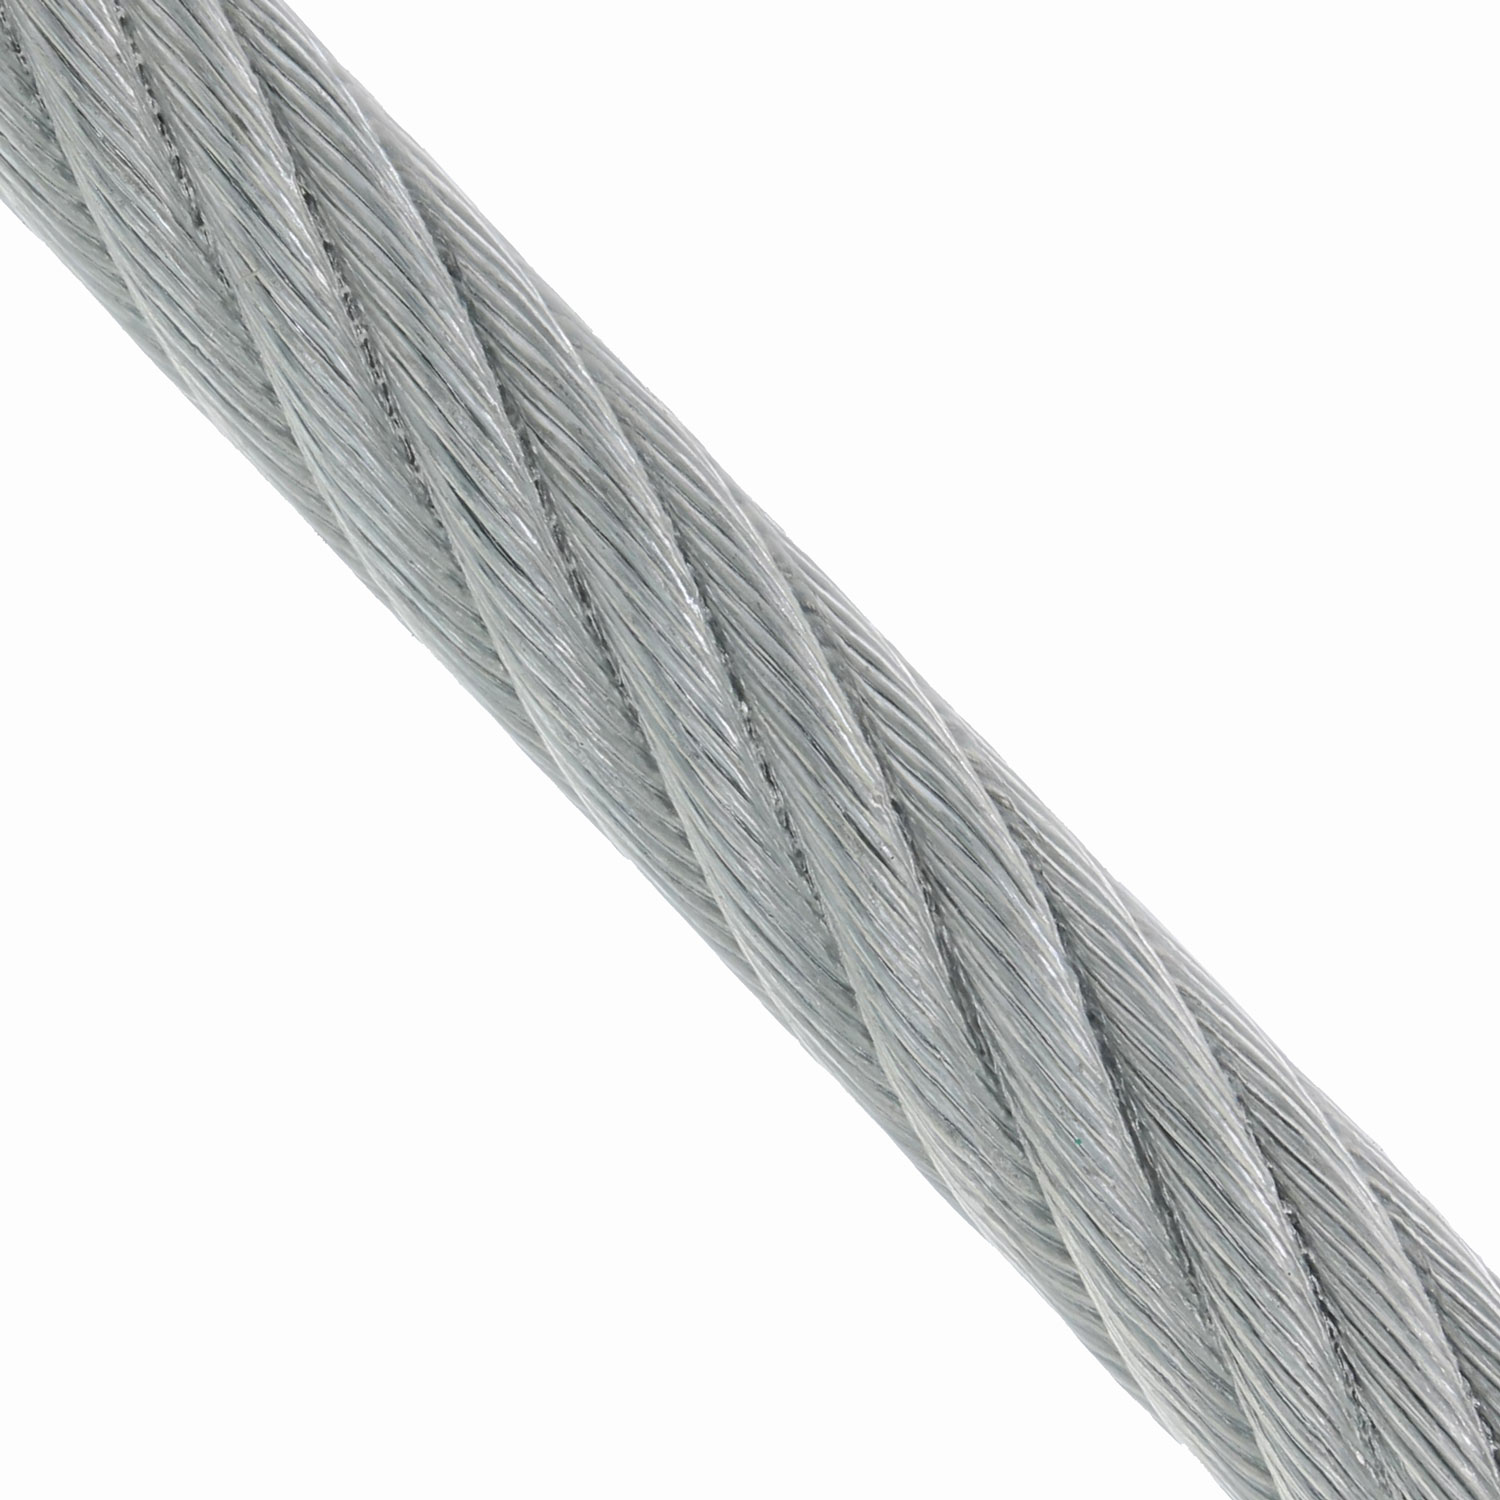 1 8 Inch 7 X 19 Vinyl Coated Galvanized Cable